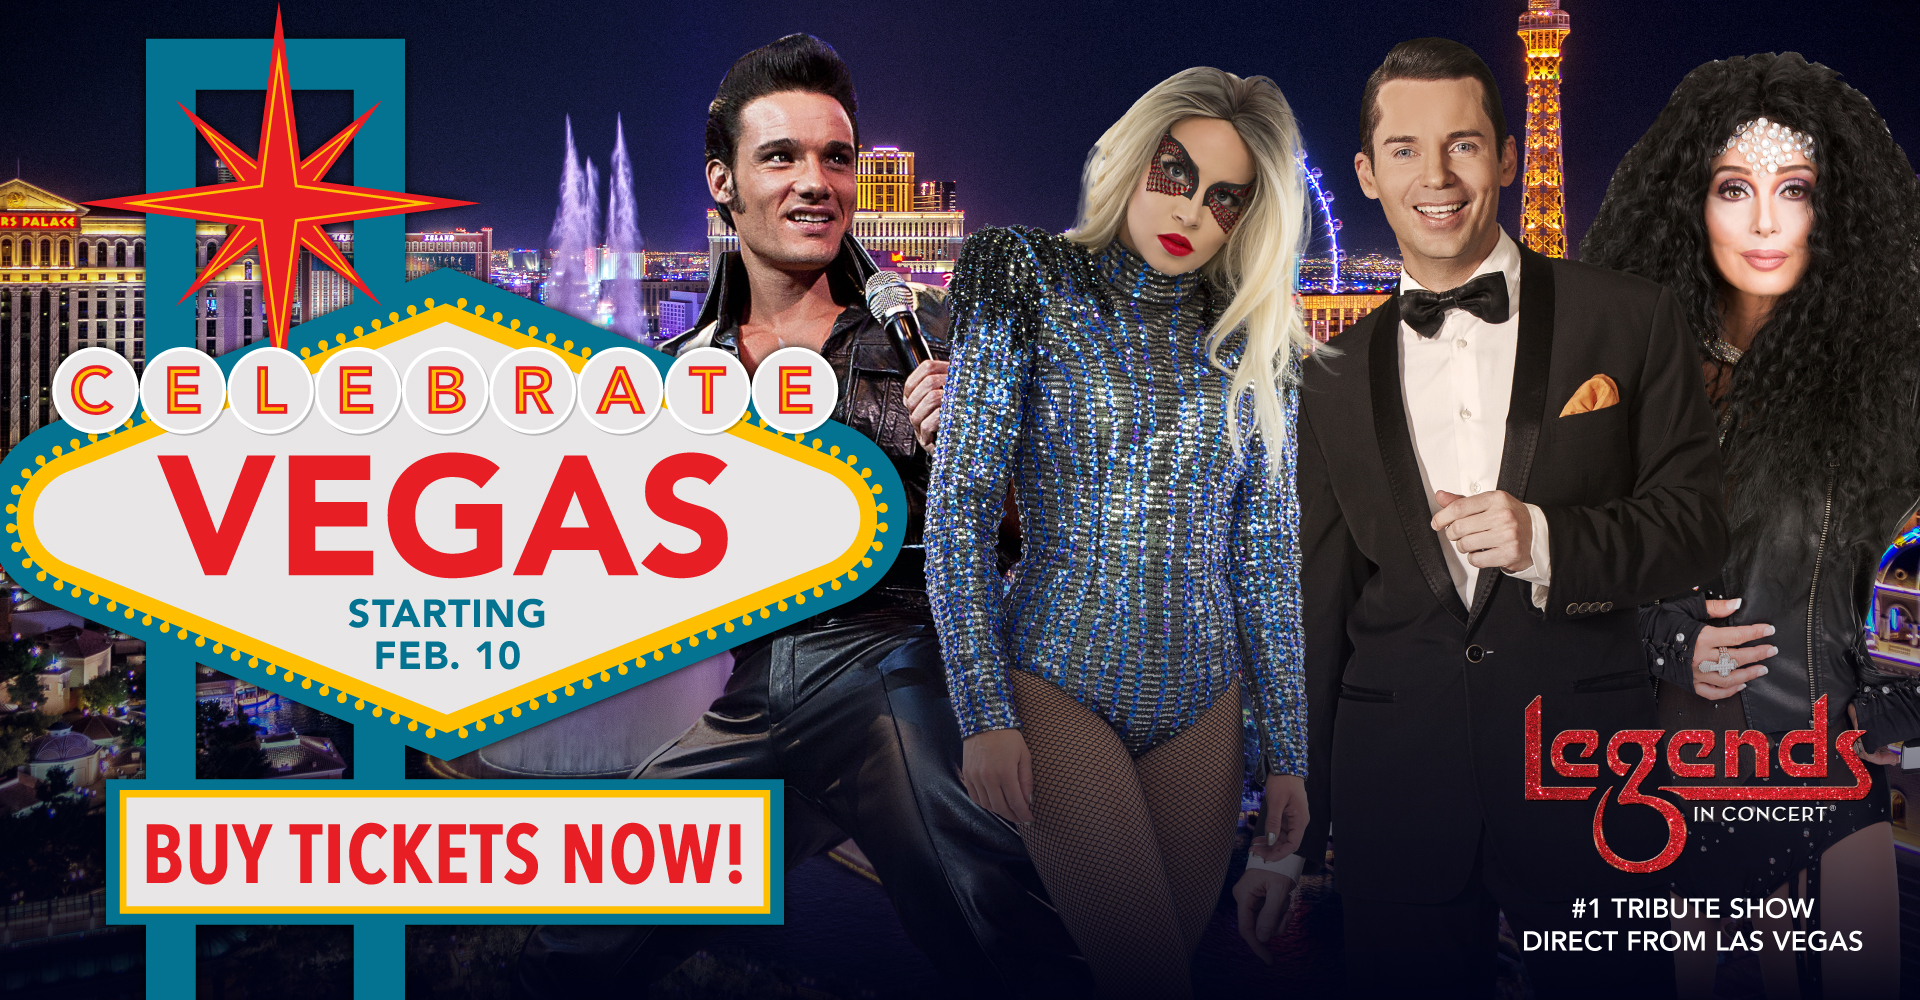 Legends in Concert: Celebrate Vegas